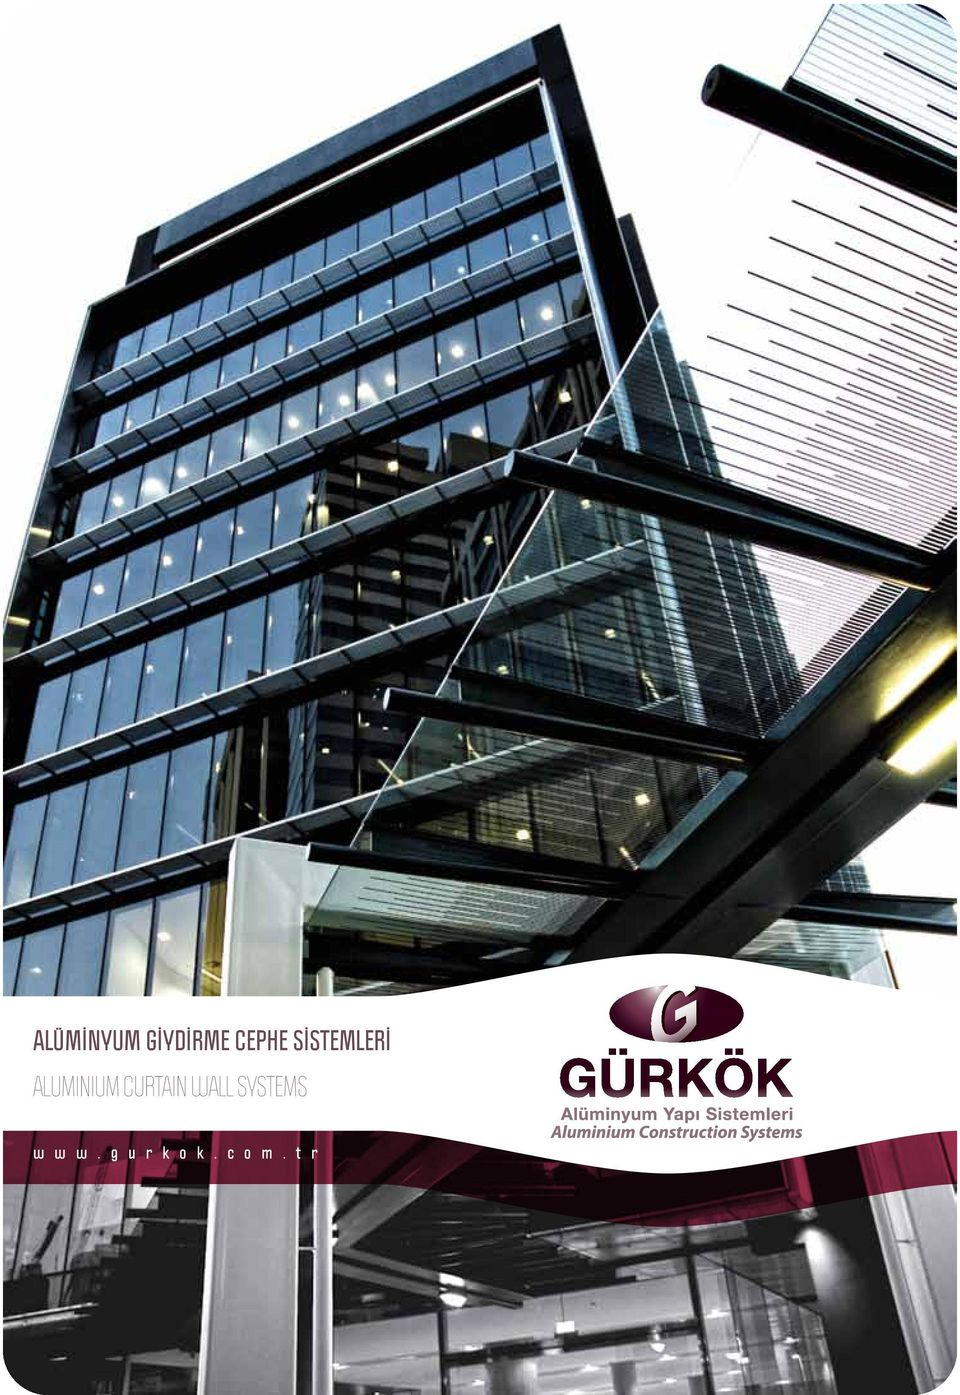 CURTAIN WALL SYSTEMS w w